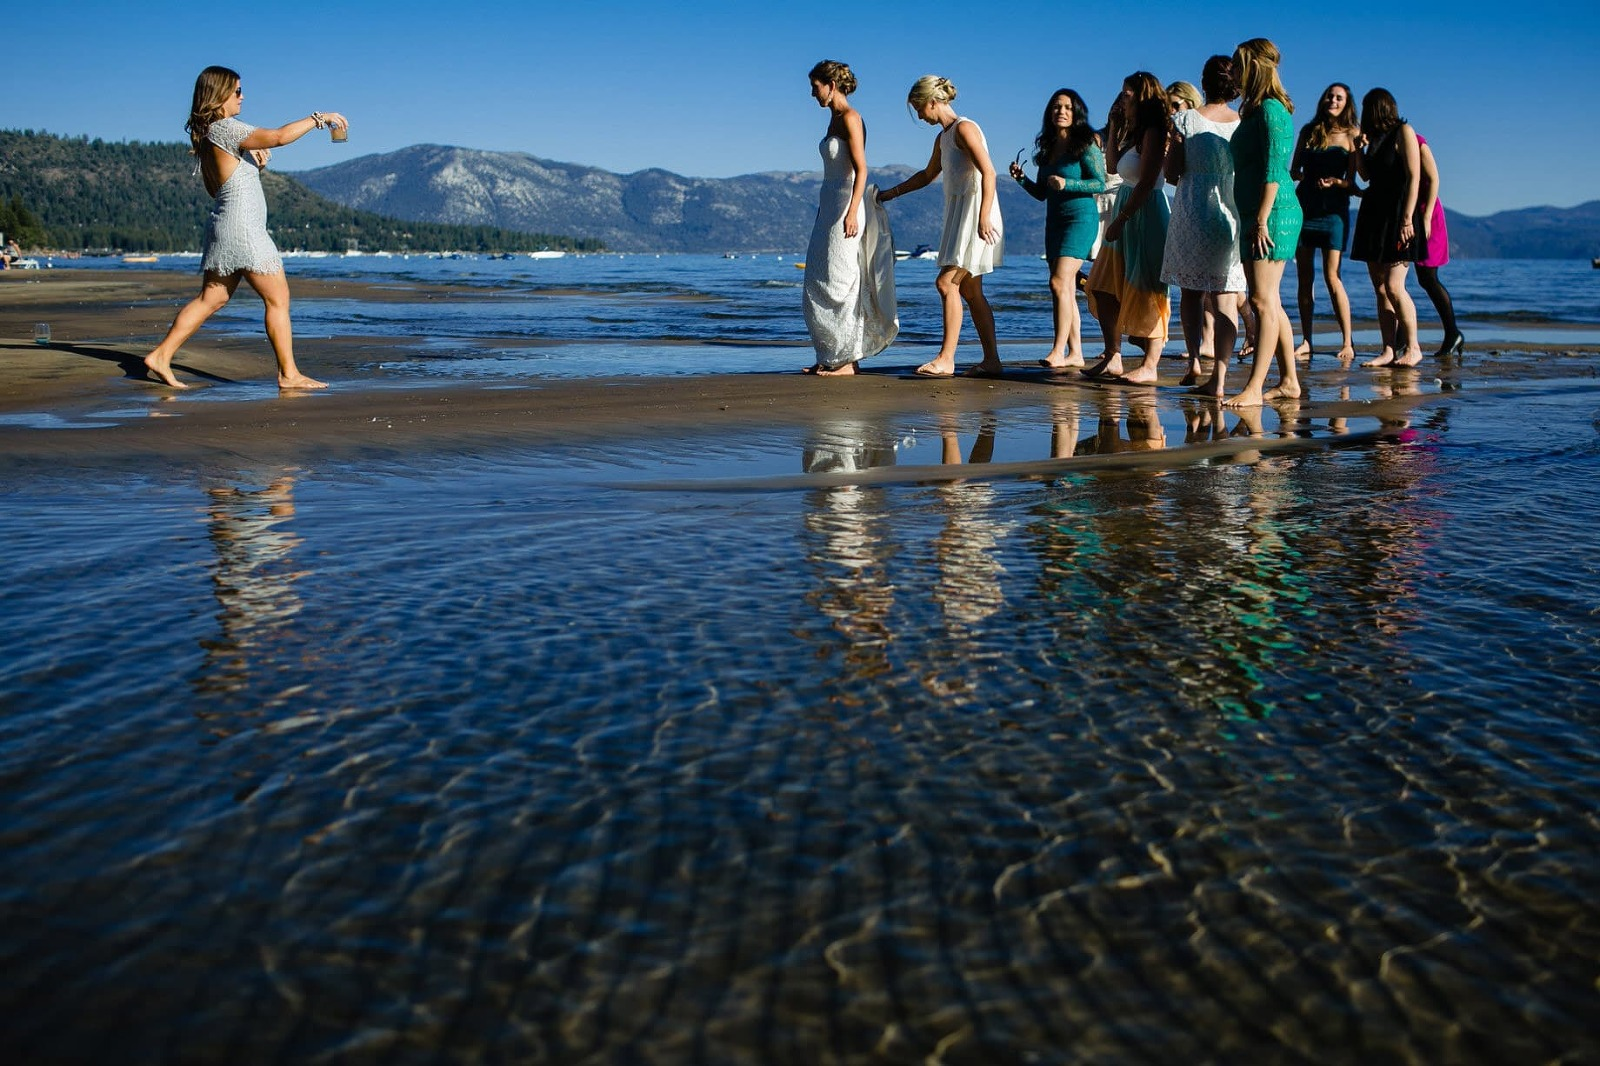 At a Lake Tahoe beach wedding, the bridesmaids' job is to take care of the bride and bring her whatever she needs!